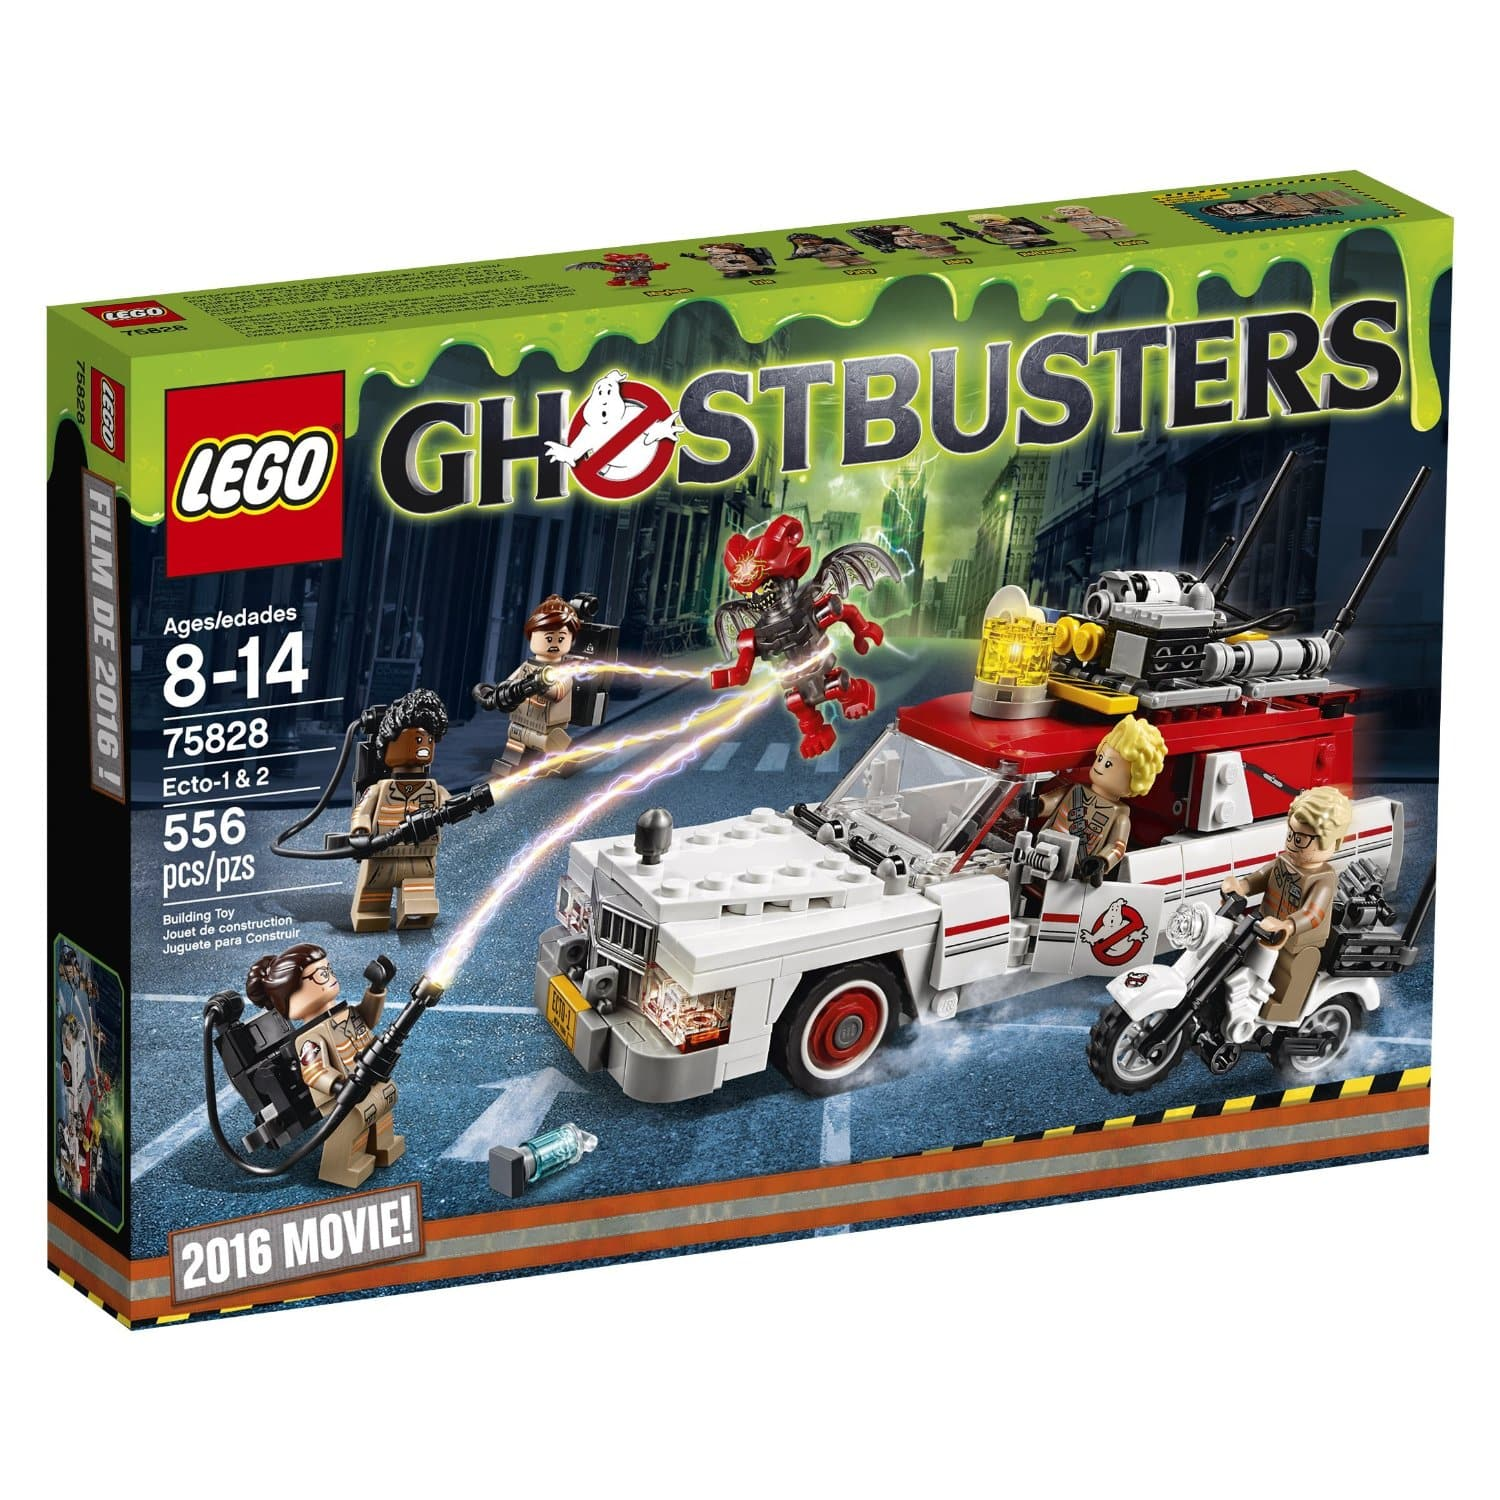 Lego Ghostbusters Ecto-1 & 2 for $51 (15% off) Amazon